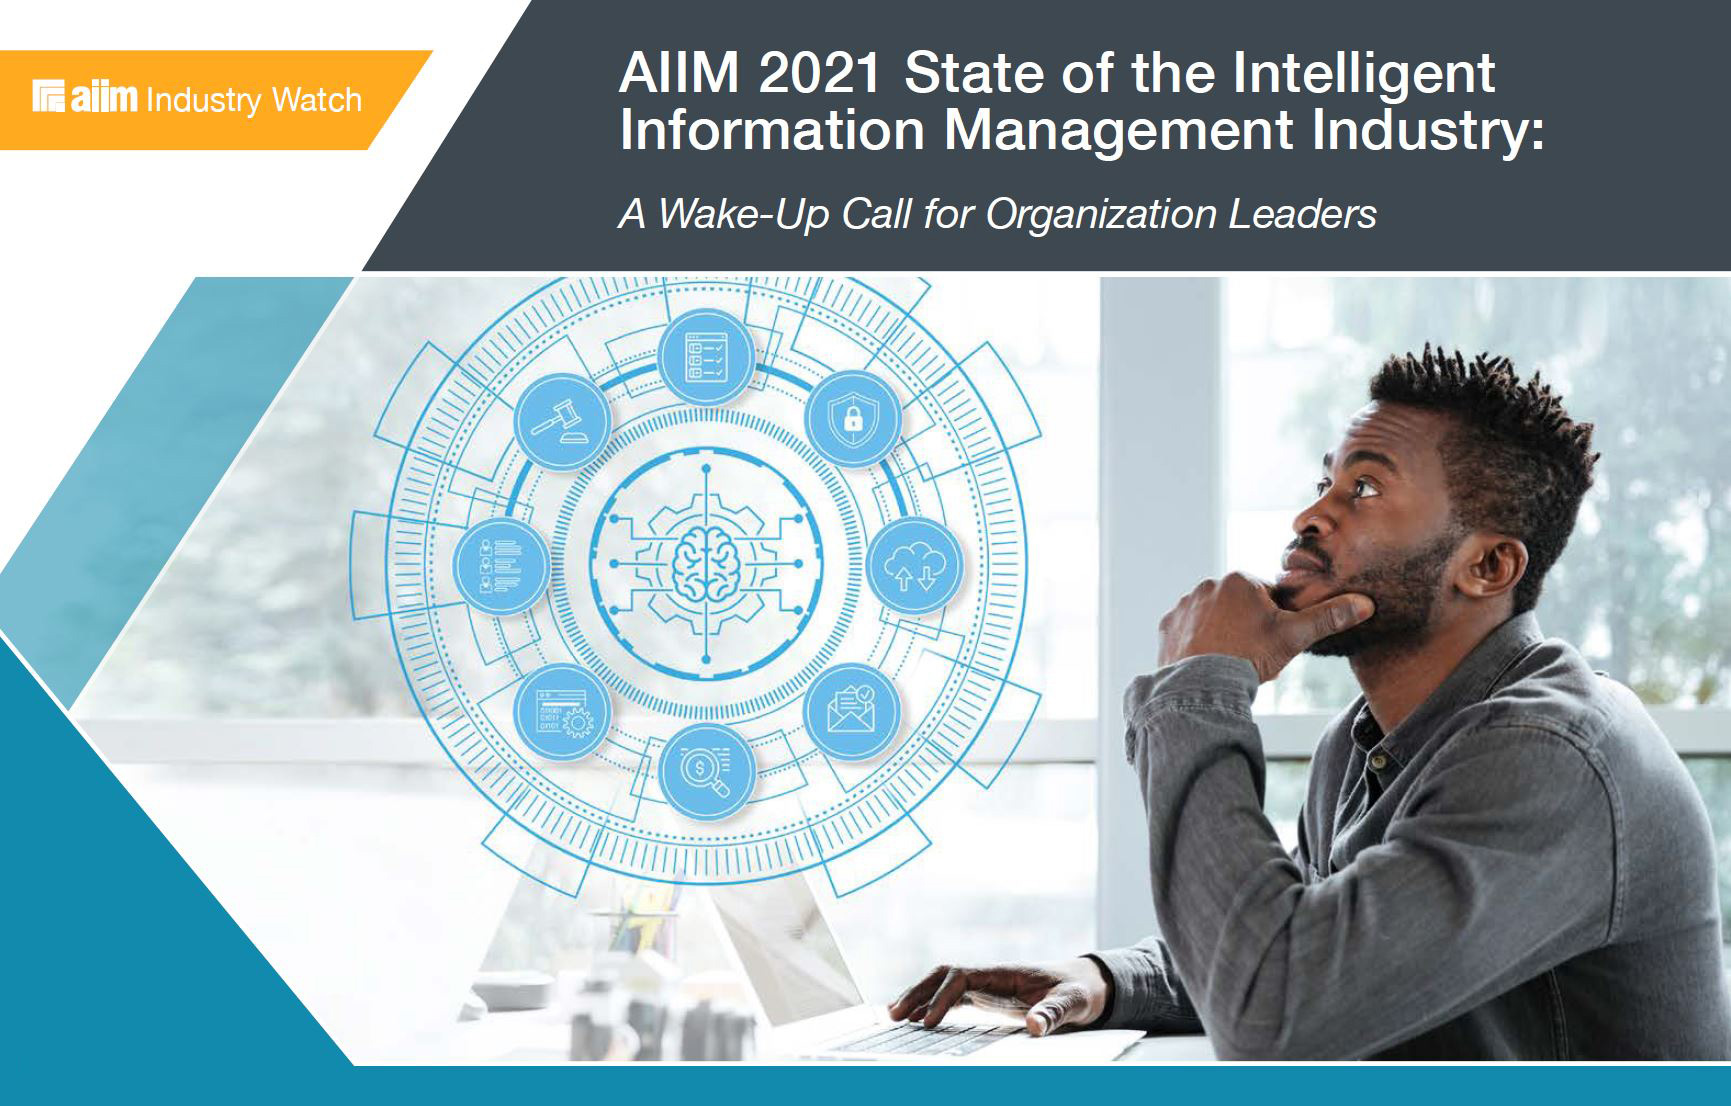 AIIM 2021 State of the Intelligent Information Management Industry